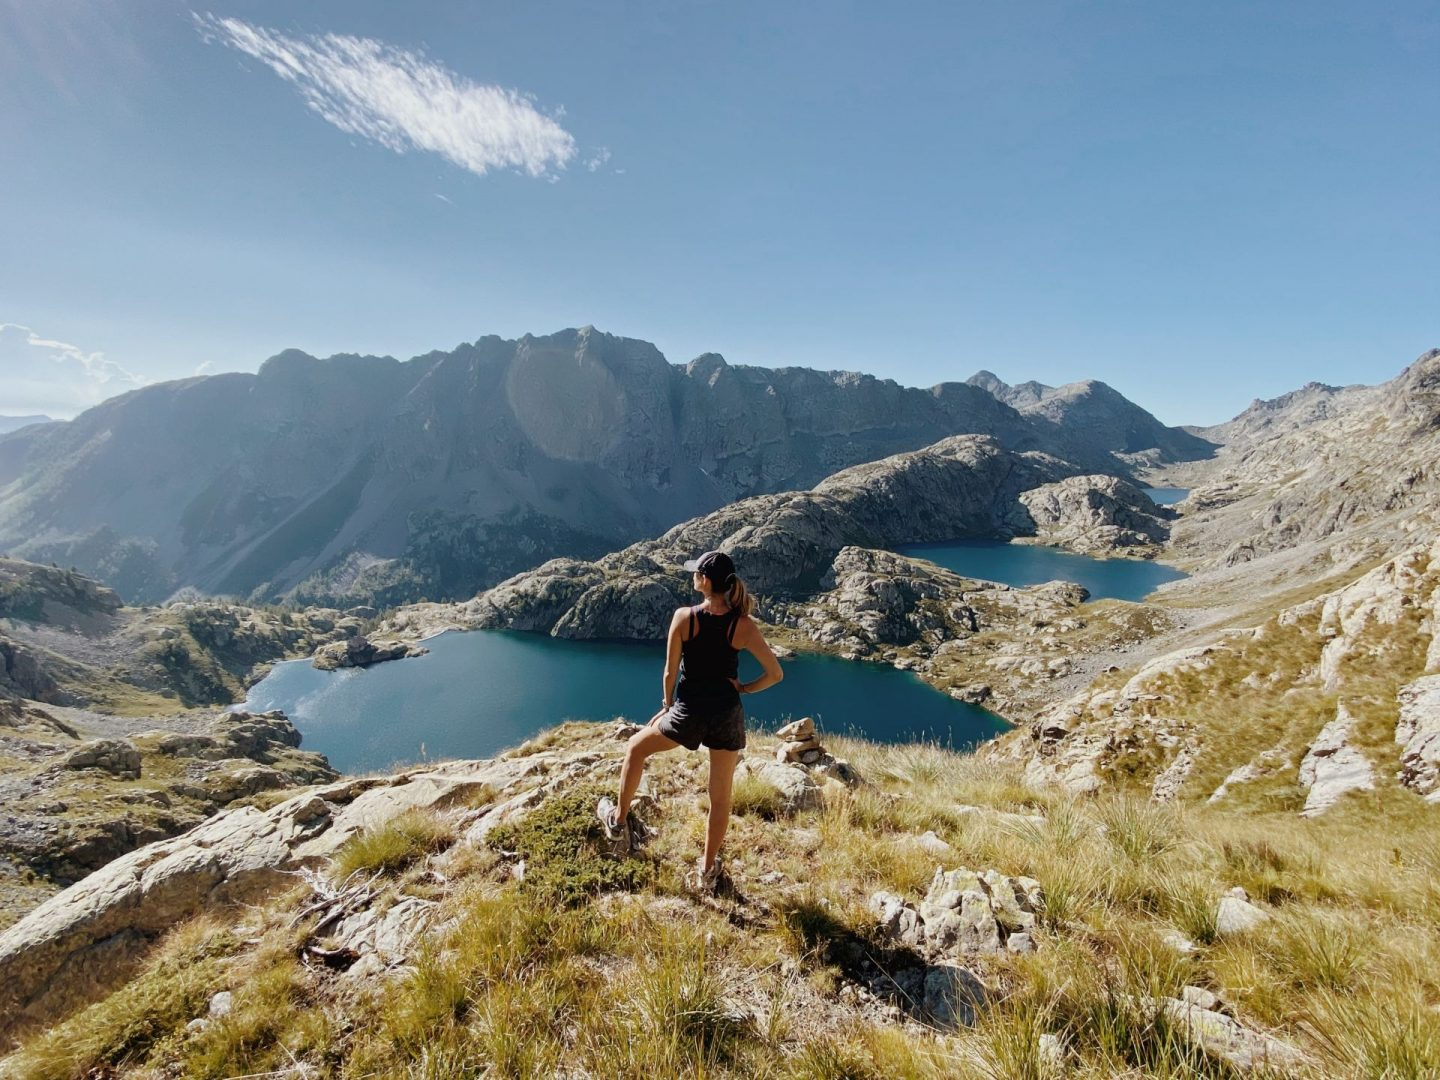 2-Day Hike in the Valley of Wonders + Alpine Climb to Lac de l'Agnel – Parc du Mercantour, France